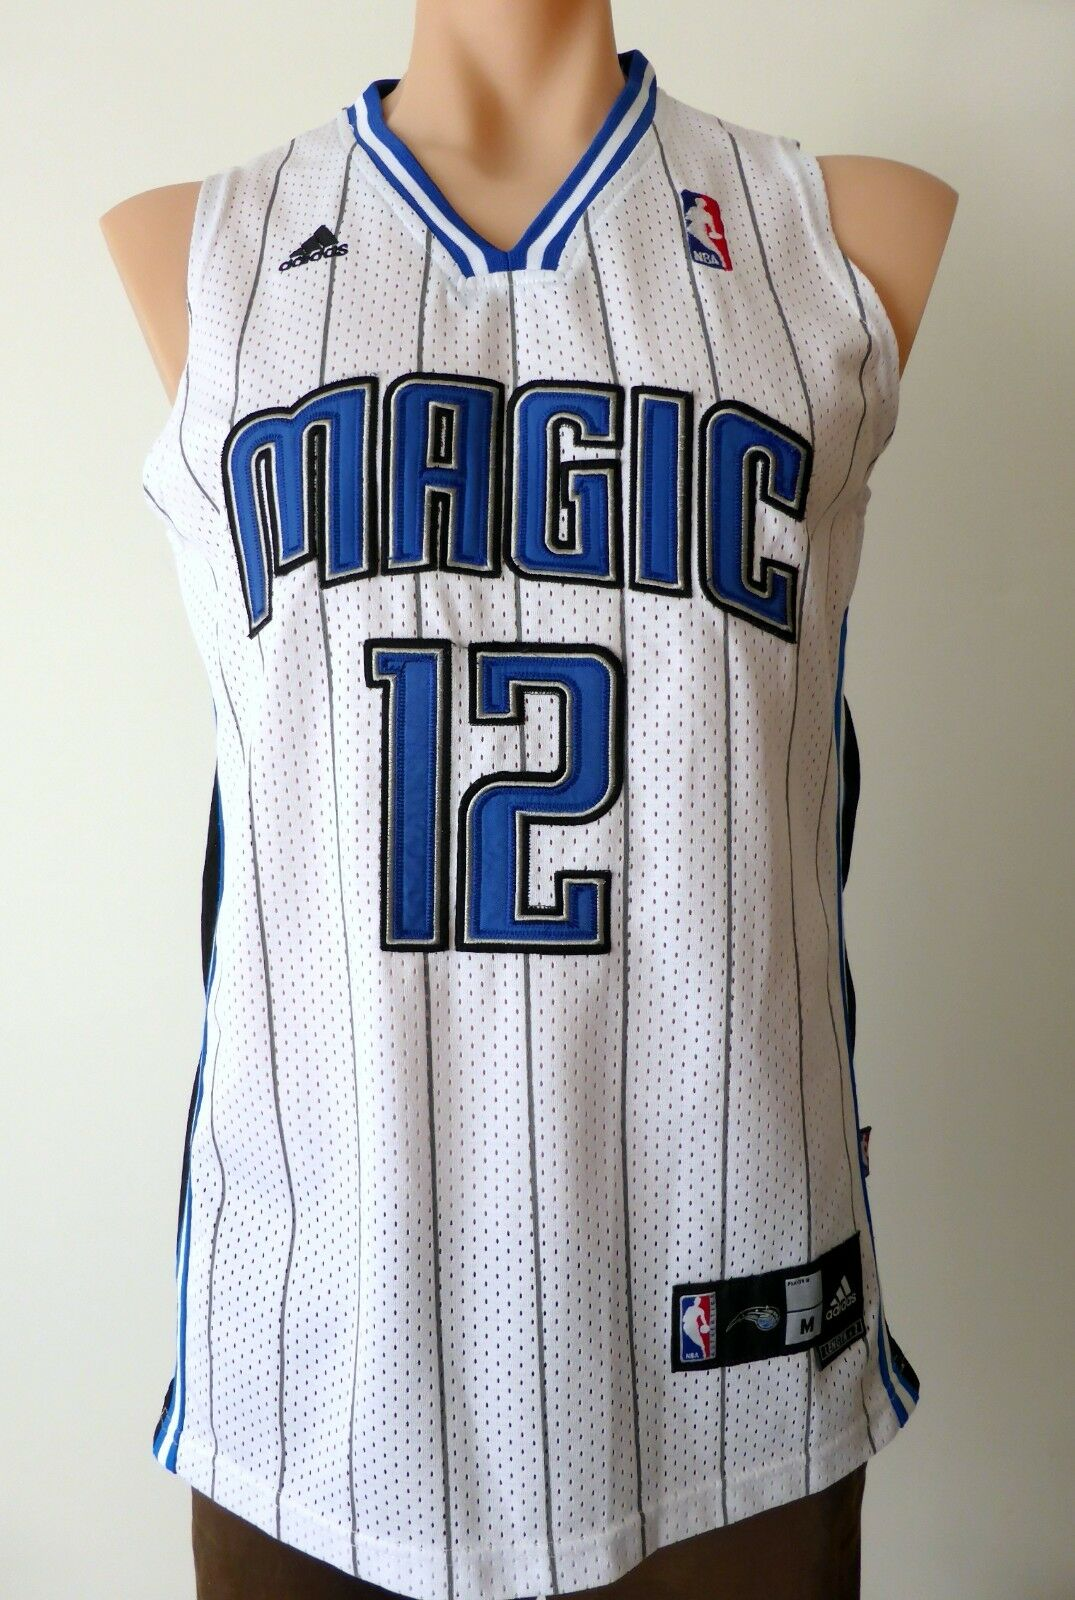 ORLANDO MAGIC Dwight Howard Adidas NBA Basketball Jersey Size M Length +2